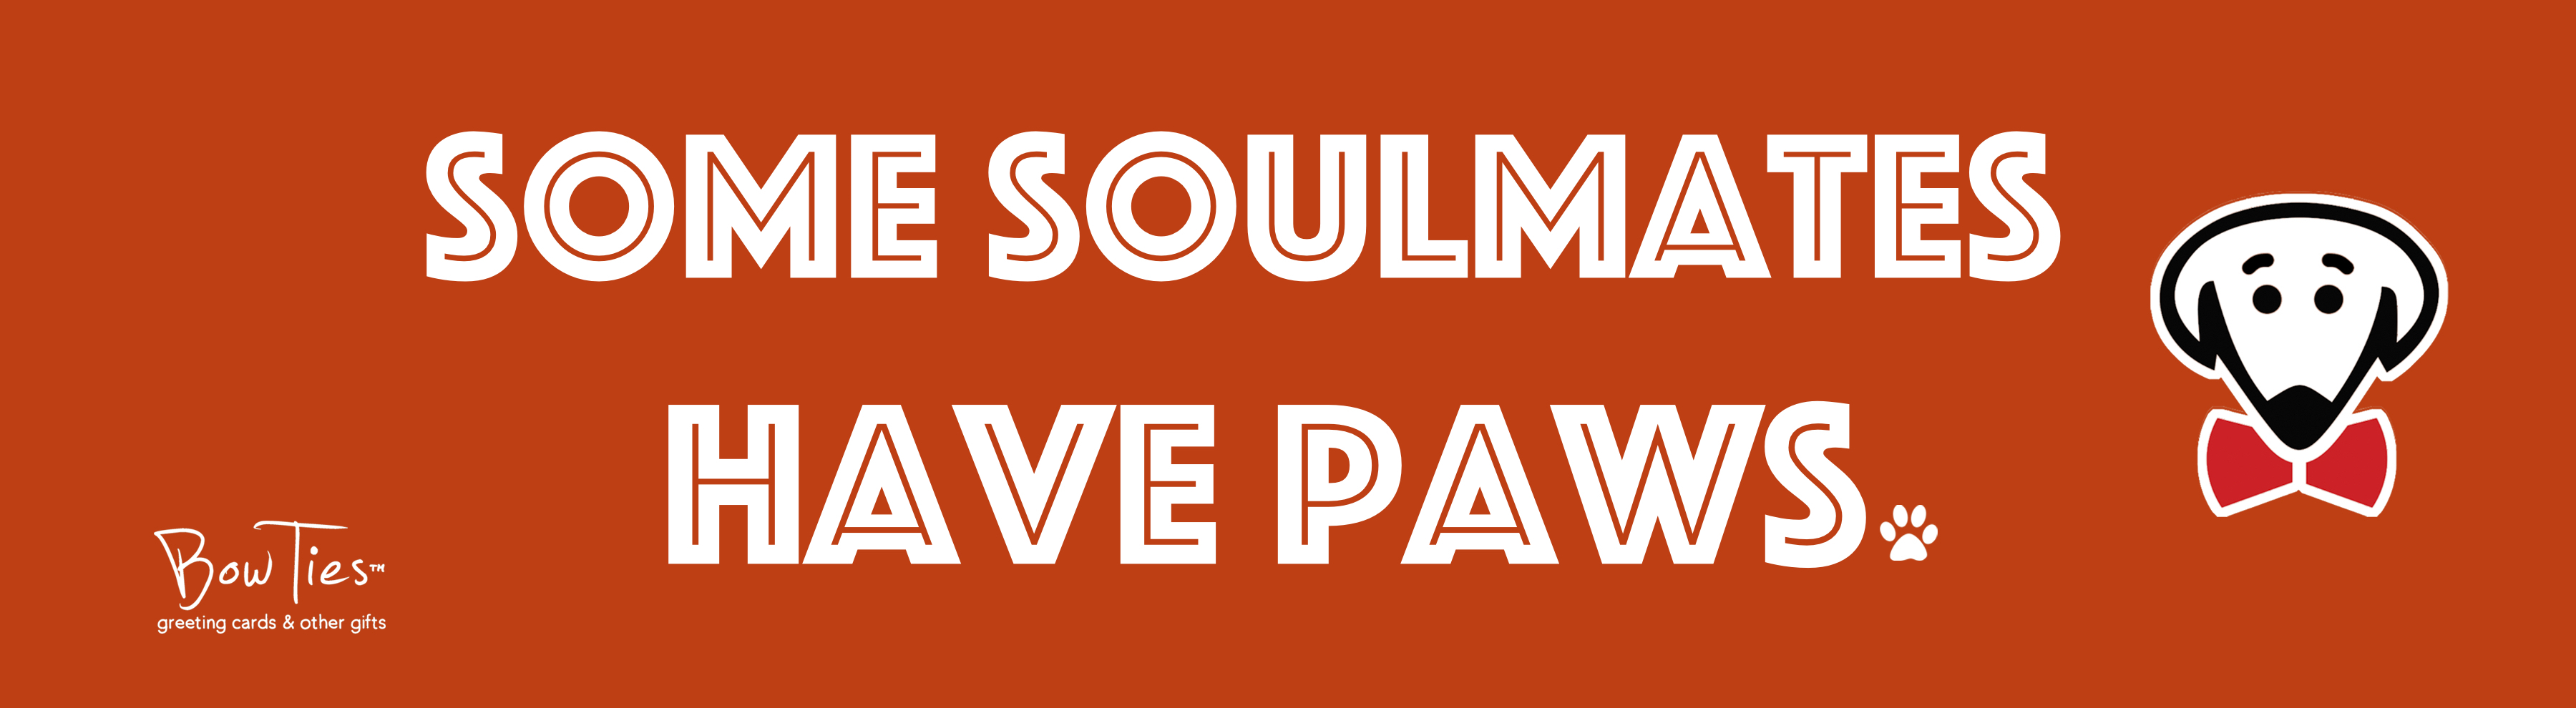 Some soulmates have paws – sticker